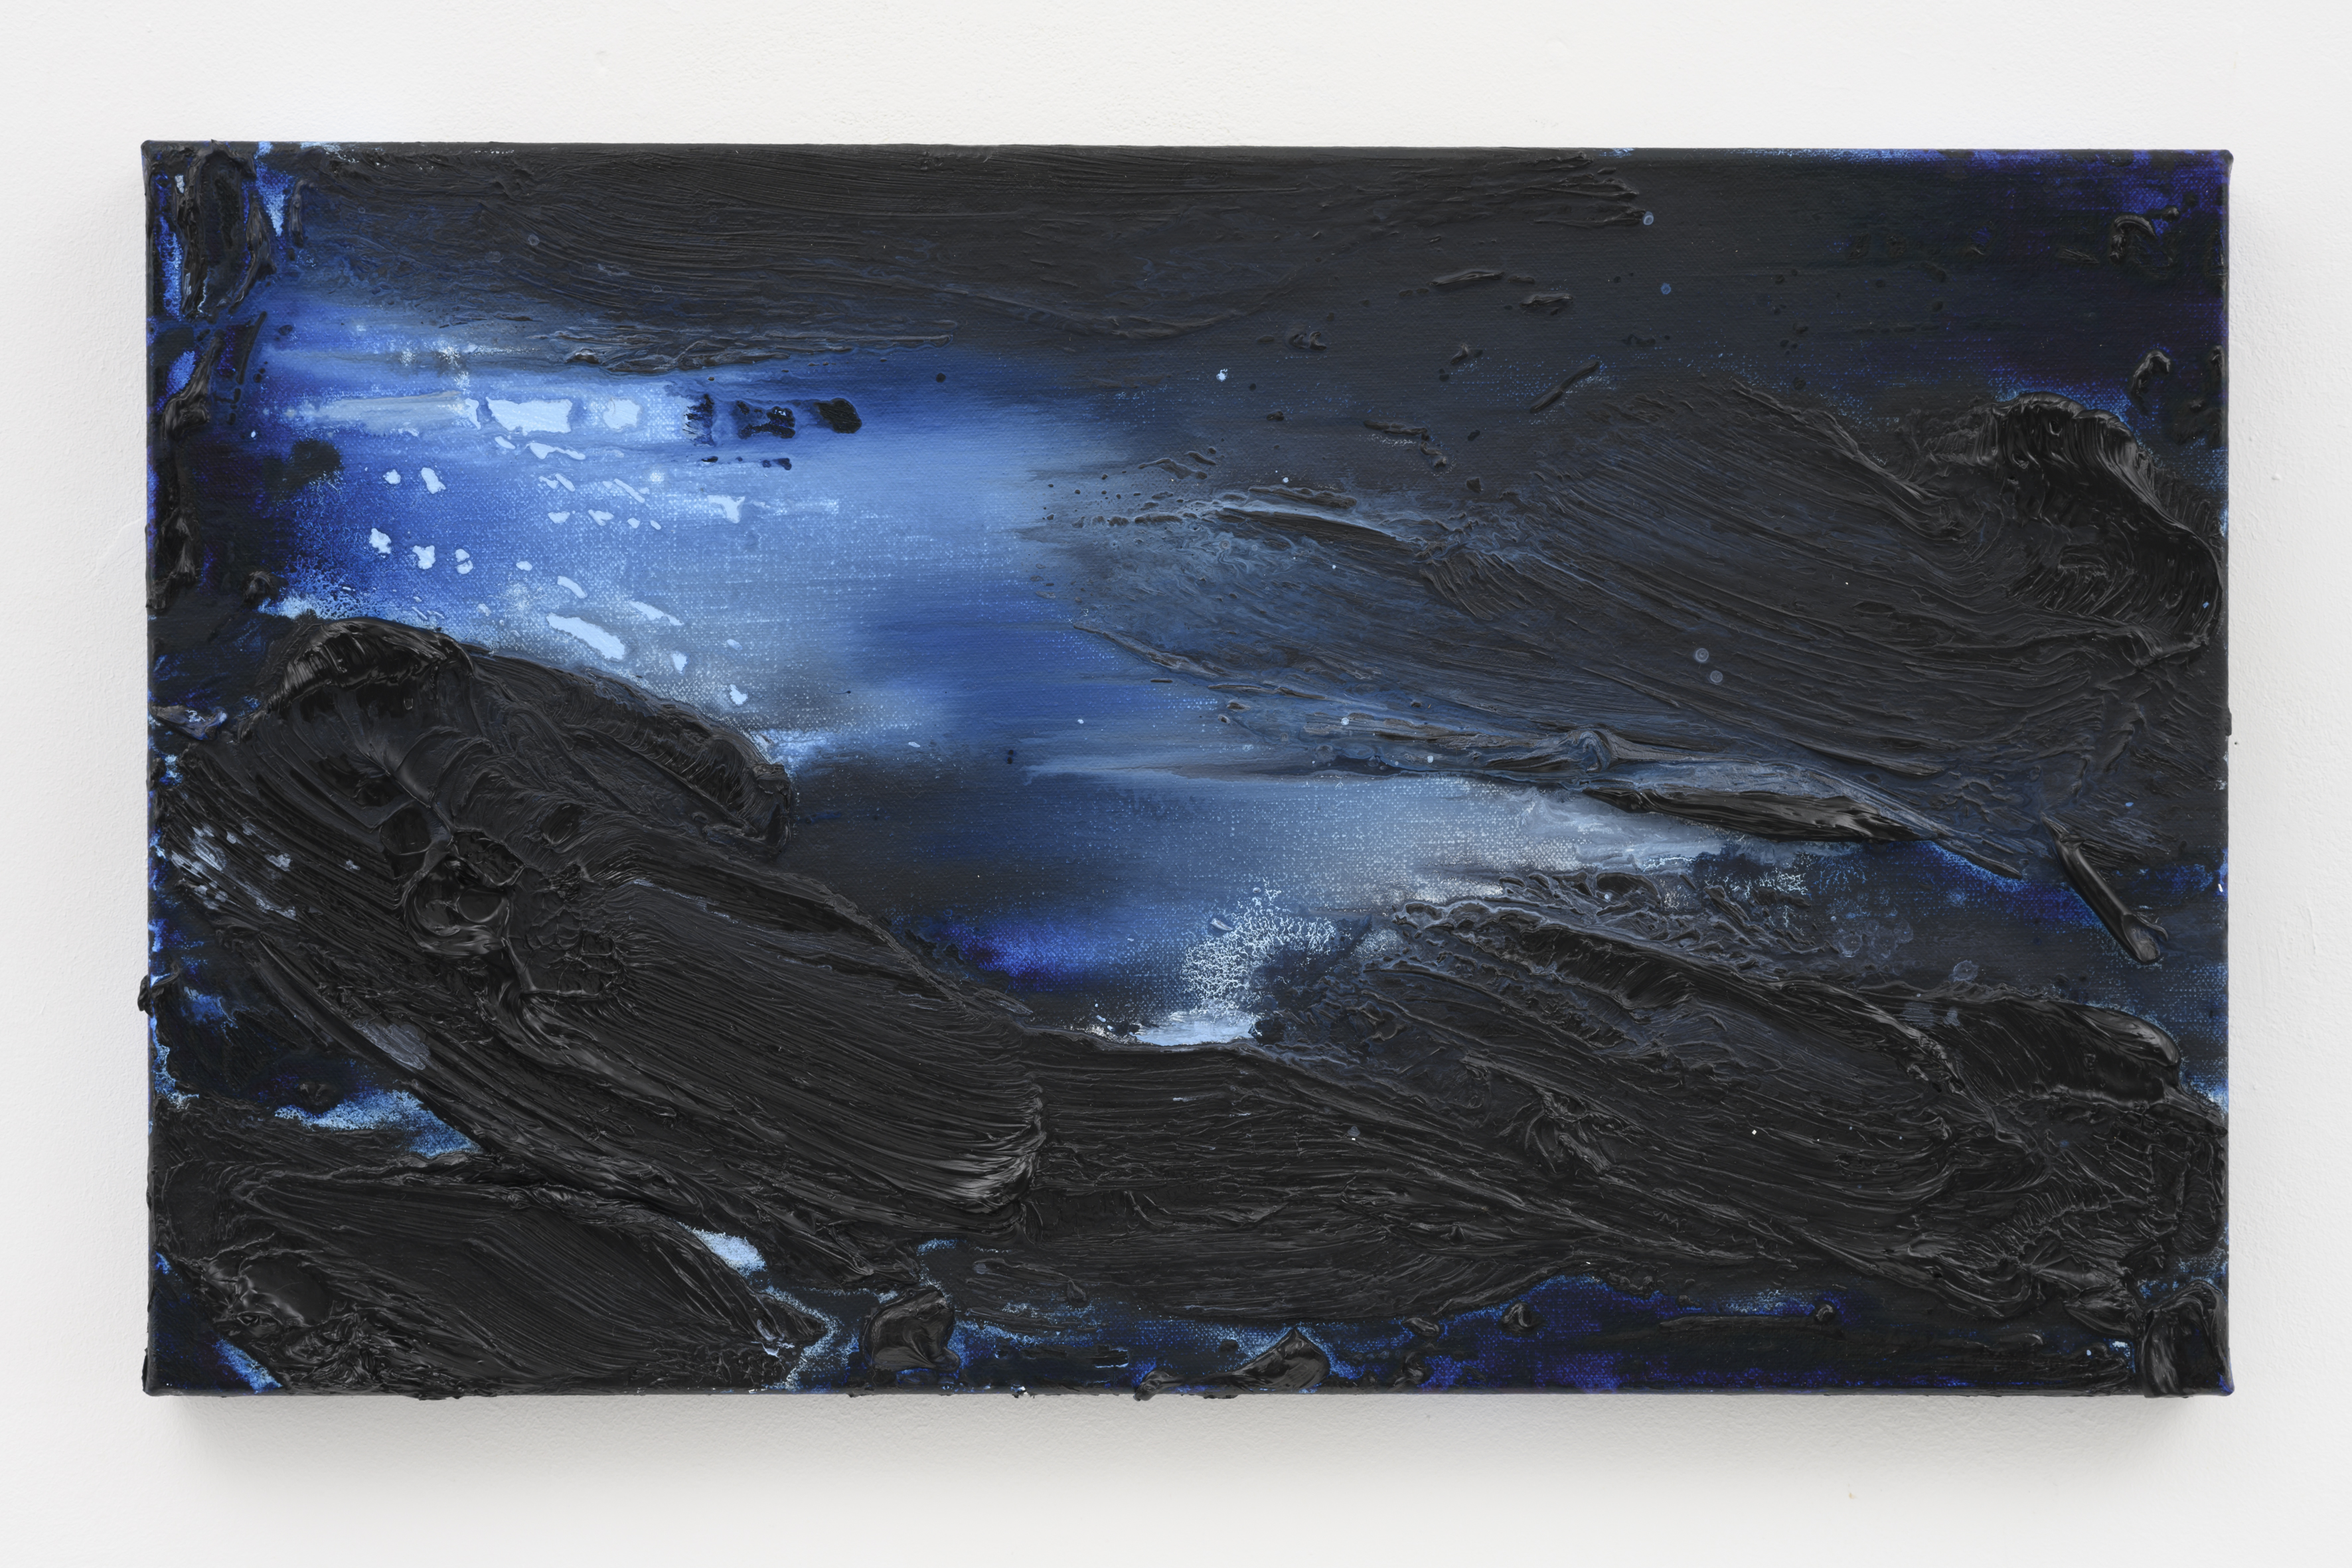 """""""My Norway, The Blues of Norway VII"""", 30 x 50 cm. oil on linen 2019 (Norway)"""